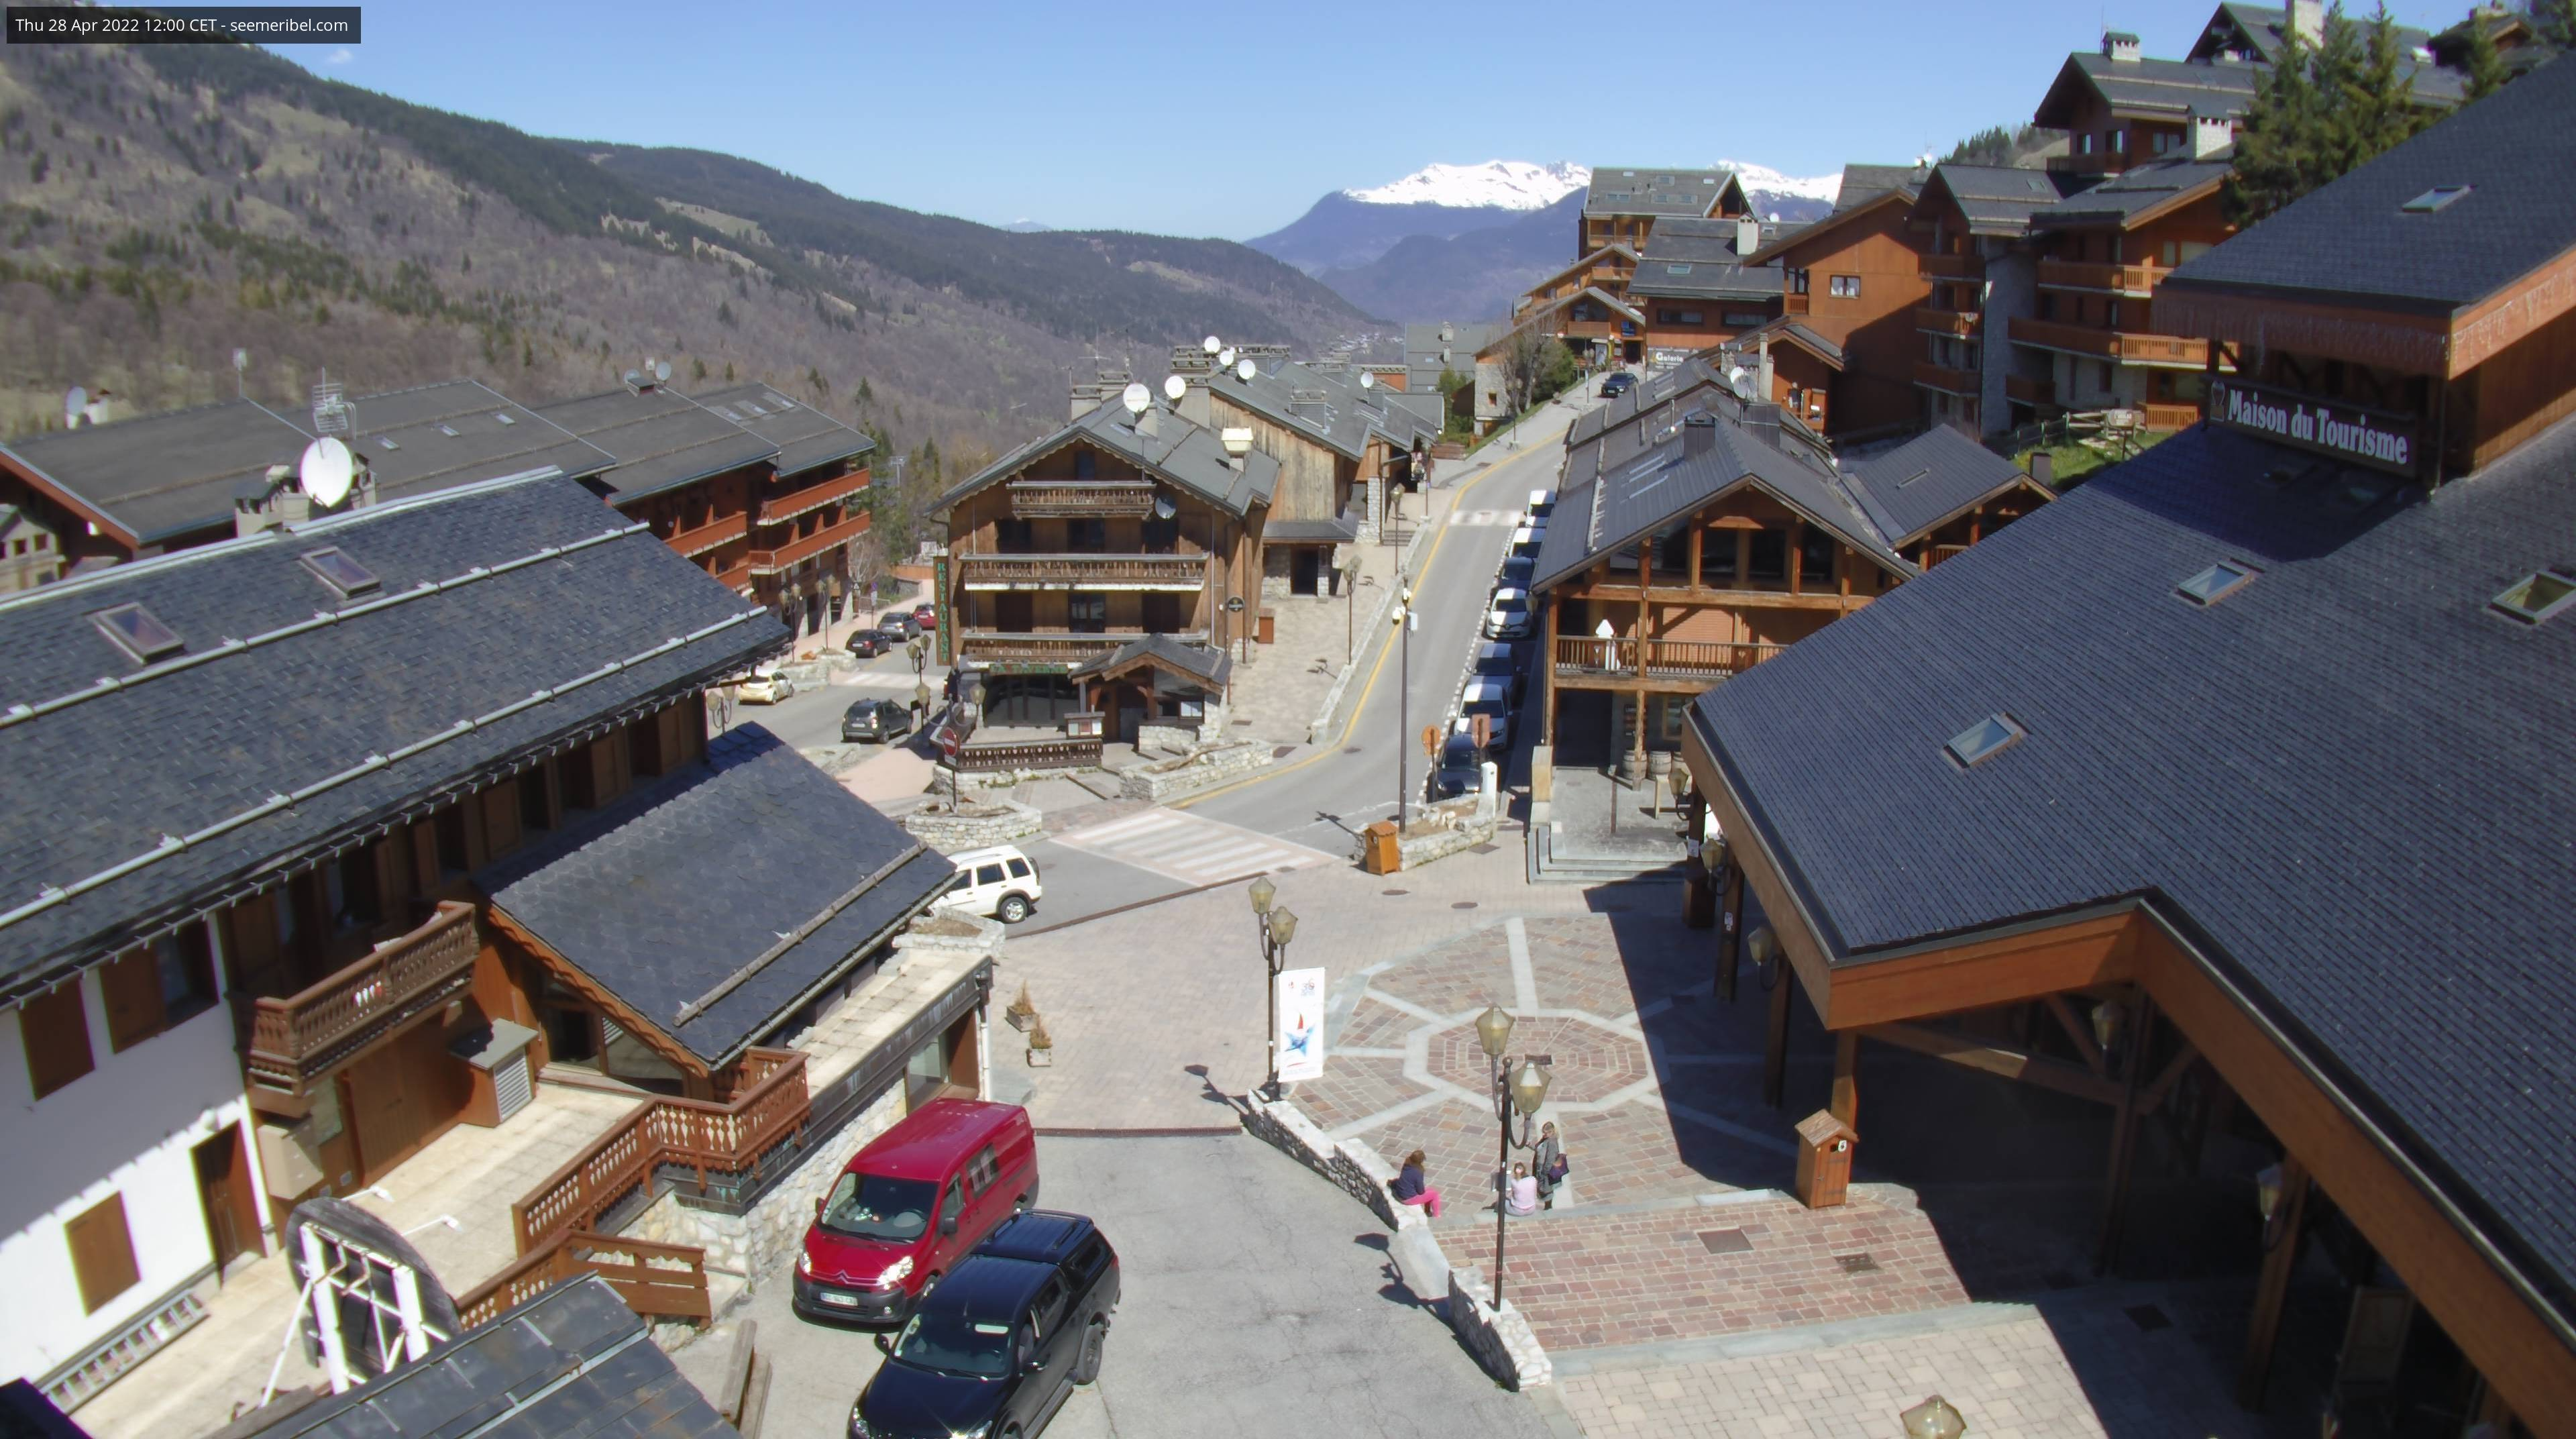 Here you can see Meribel Village Centre